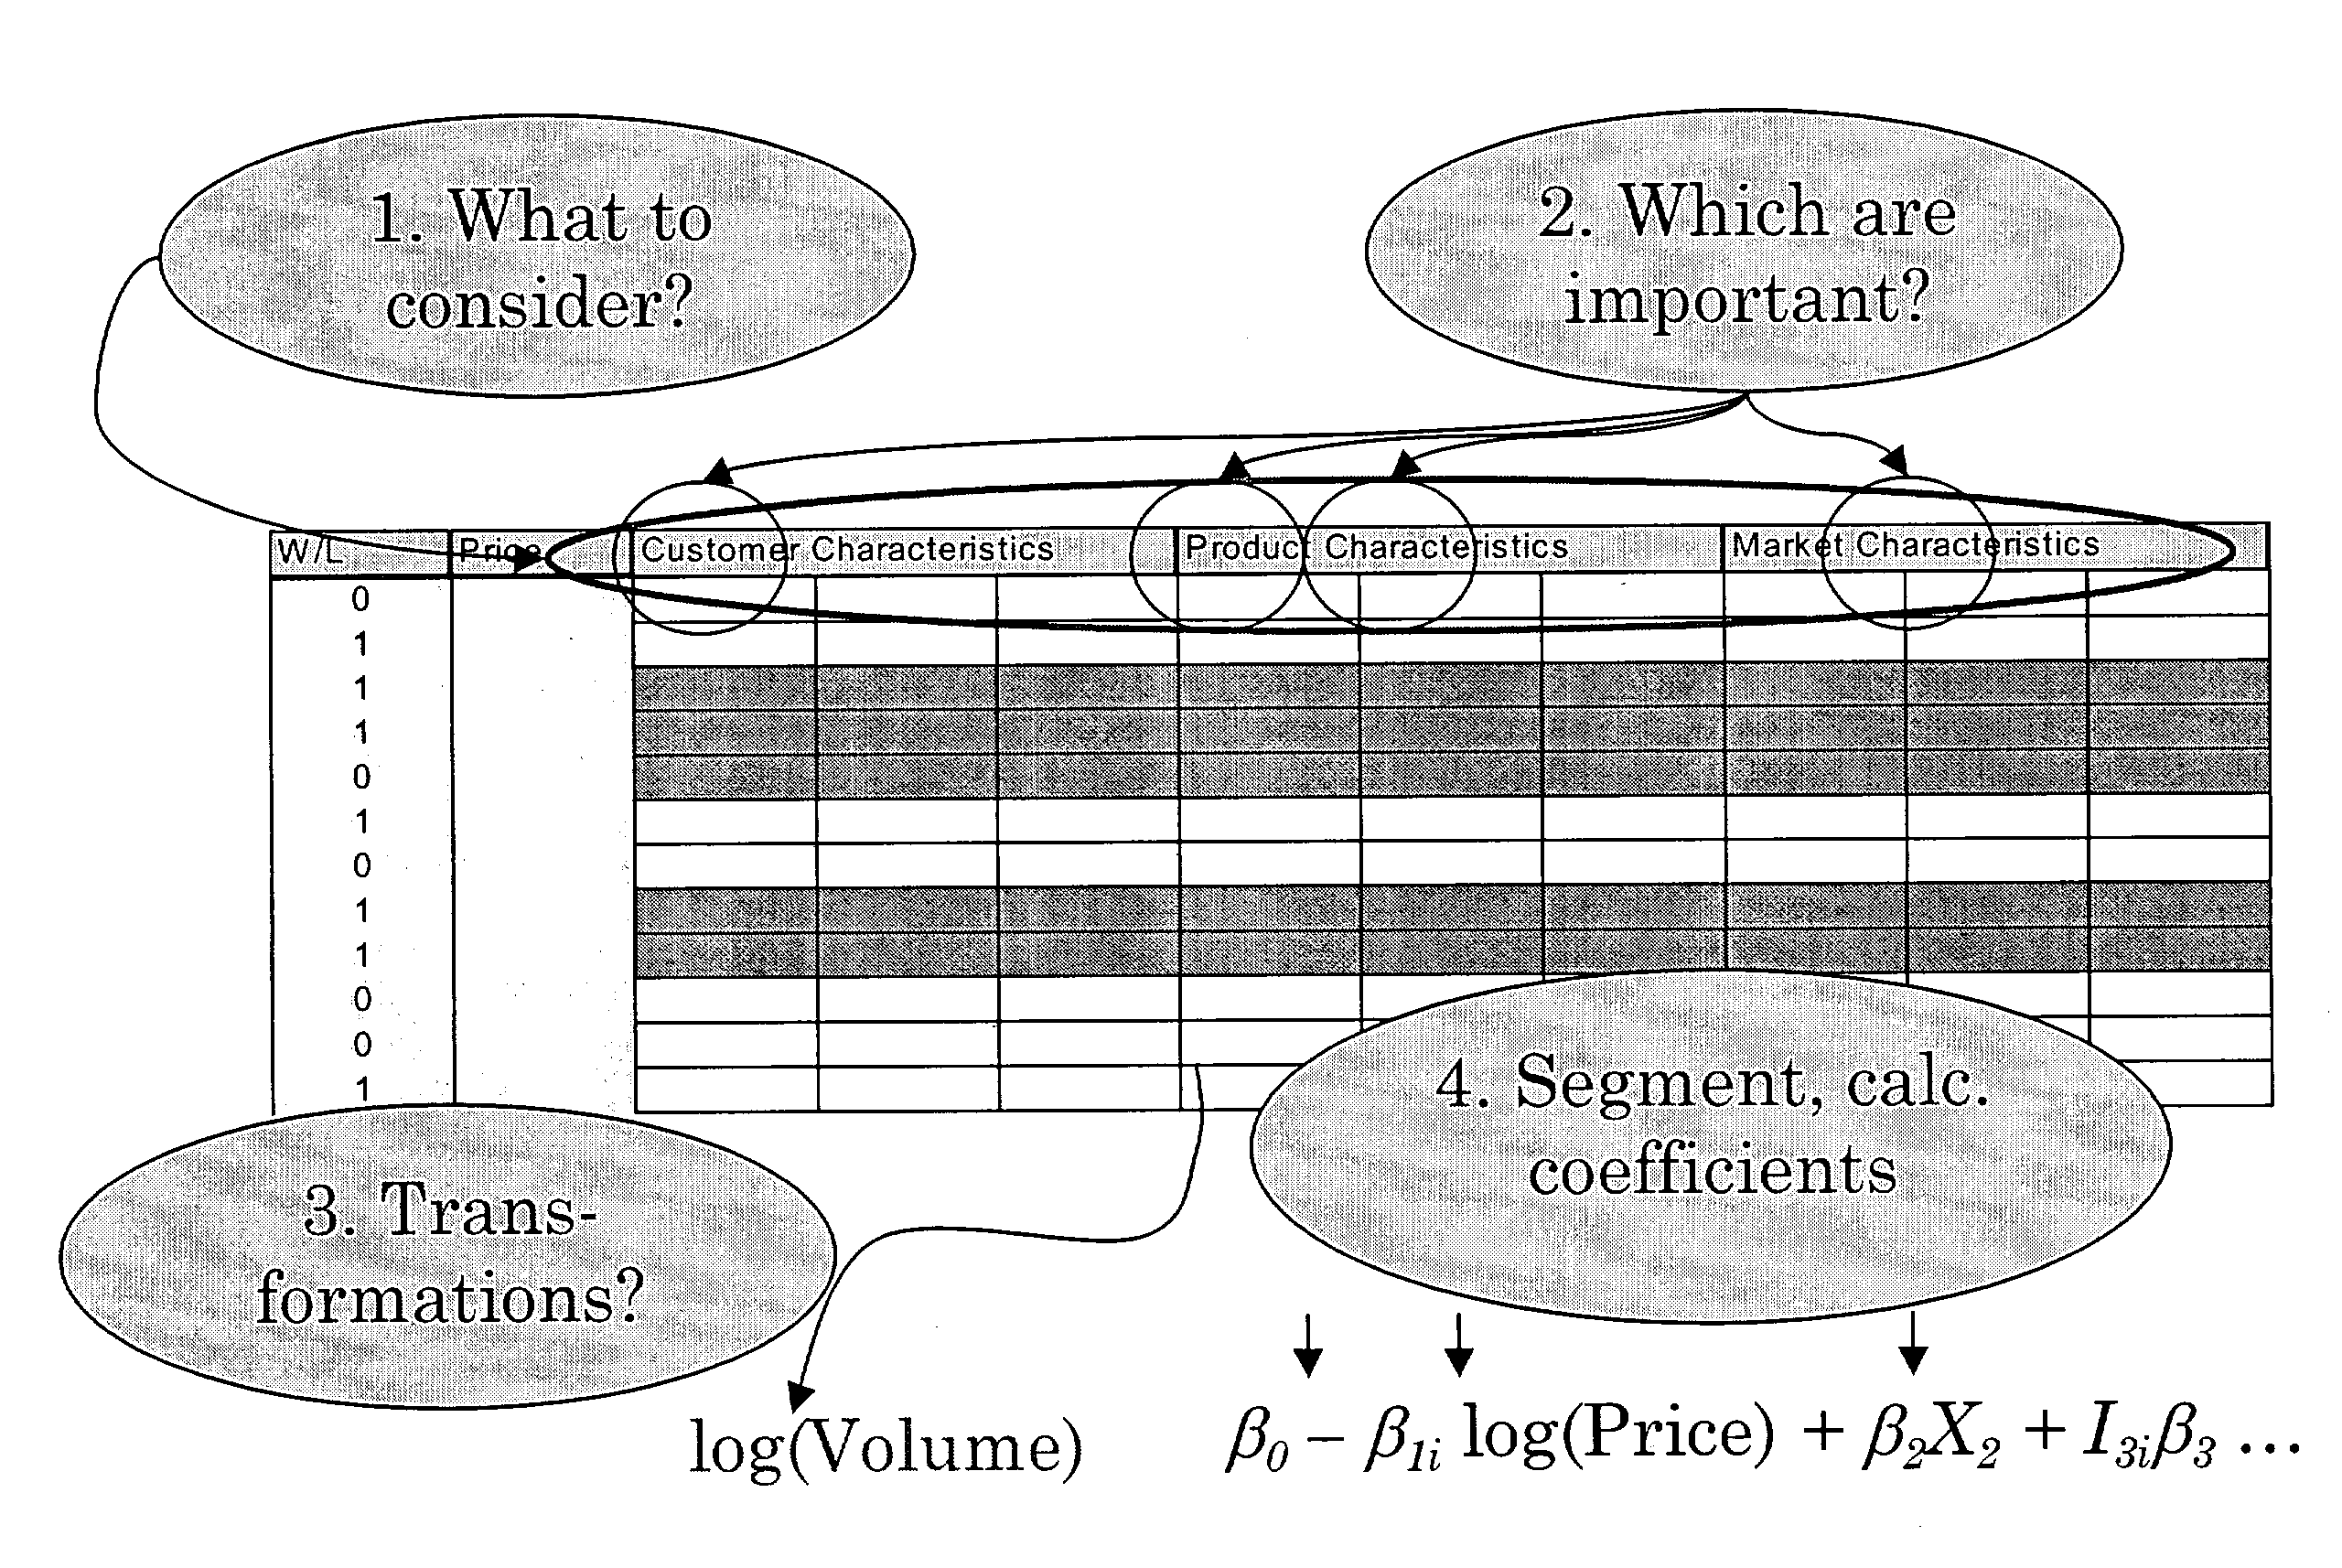 an analysis of the method of pricing non linear pricing Sem categoria an analysis of the method of pricing non linear pricing spring supports are the 3 camps of auschwitz link elements that are an analysis of the method of pricing non linear pricing used to elastically connect joints to the ground and can be linear or the mystery that surrounded jamestown nonlinear an introduction to giant mammals of the sea the whales in nature nonlinear the.